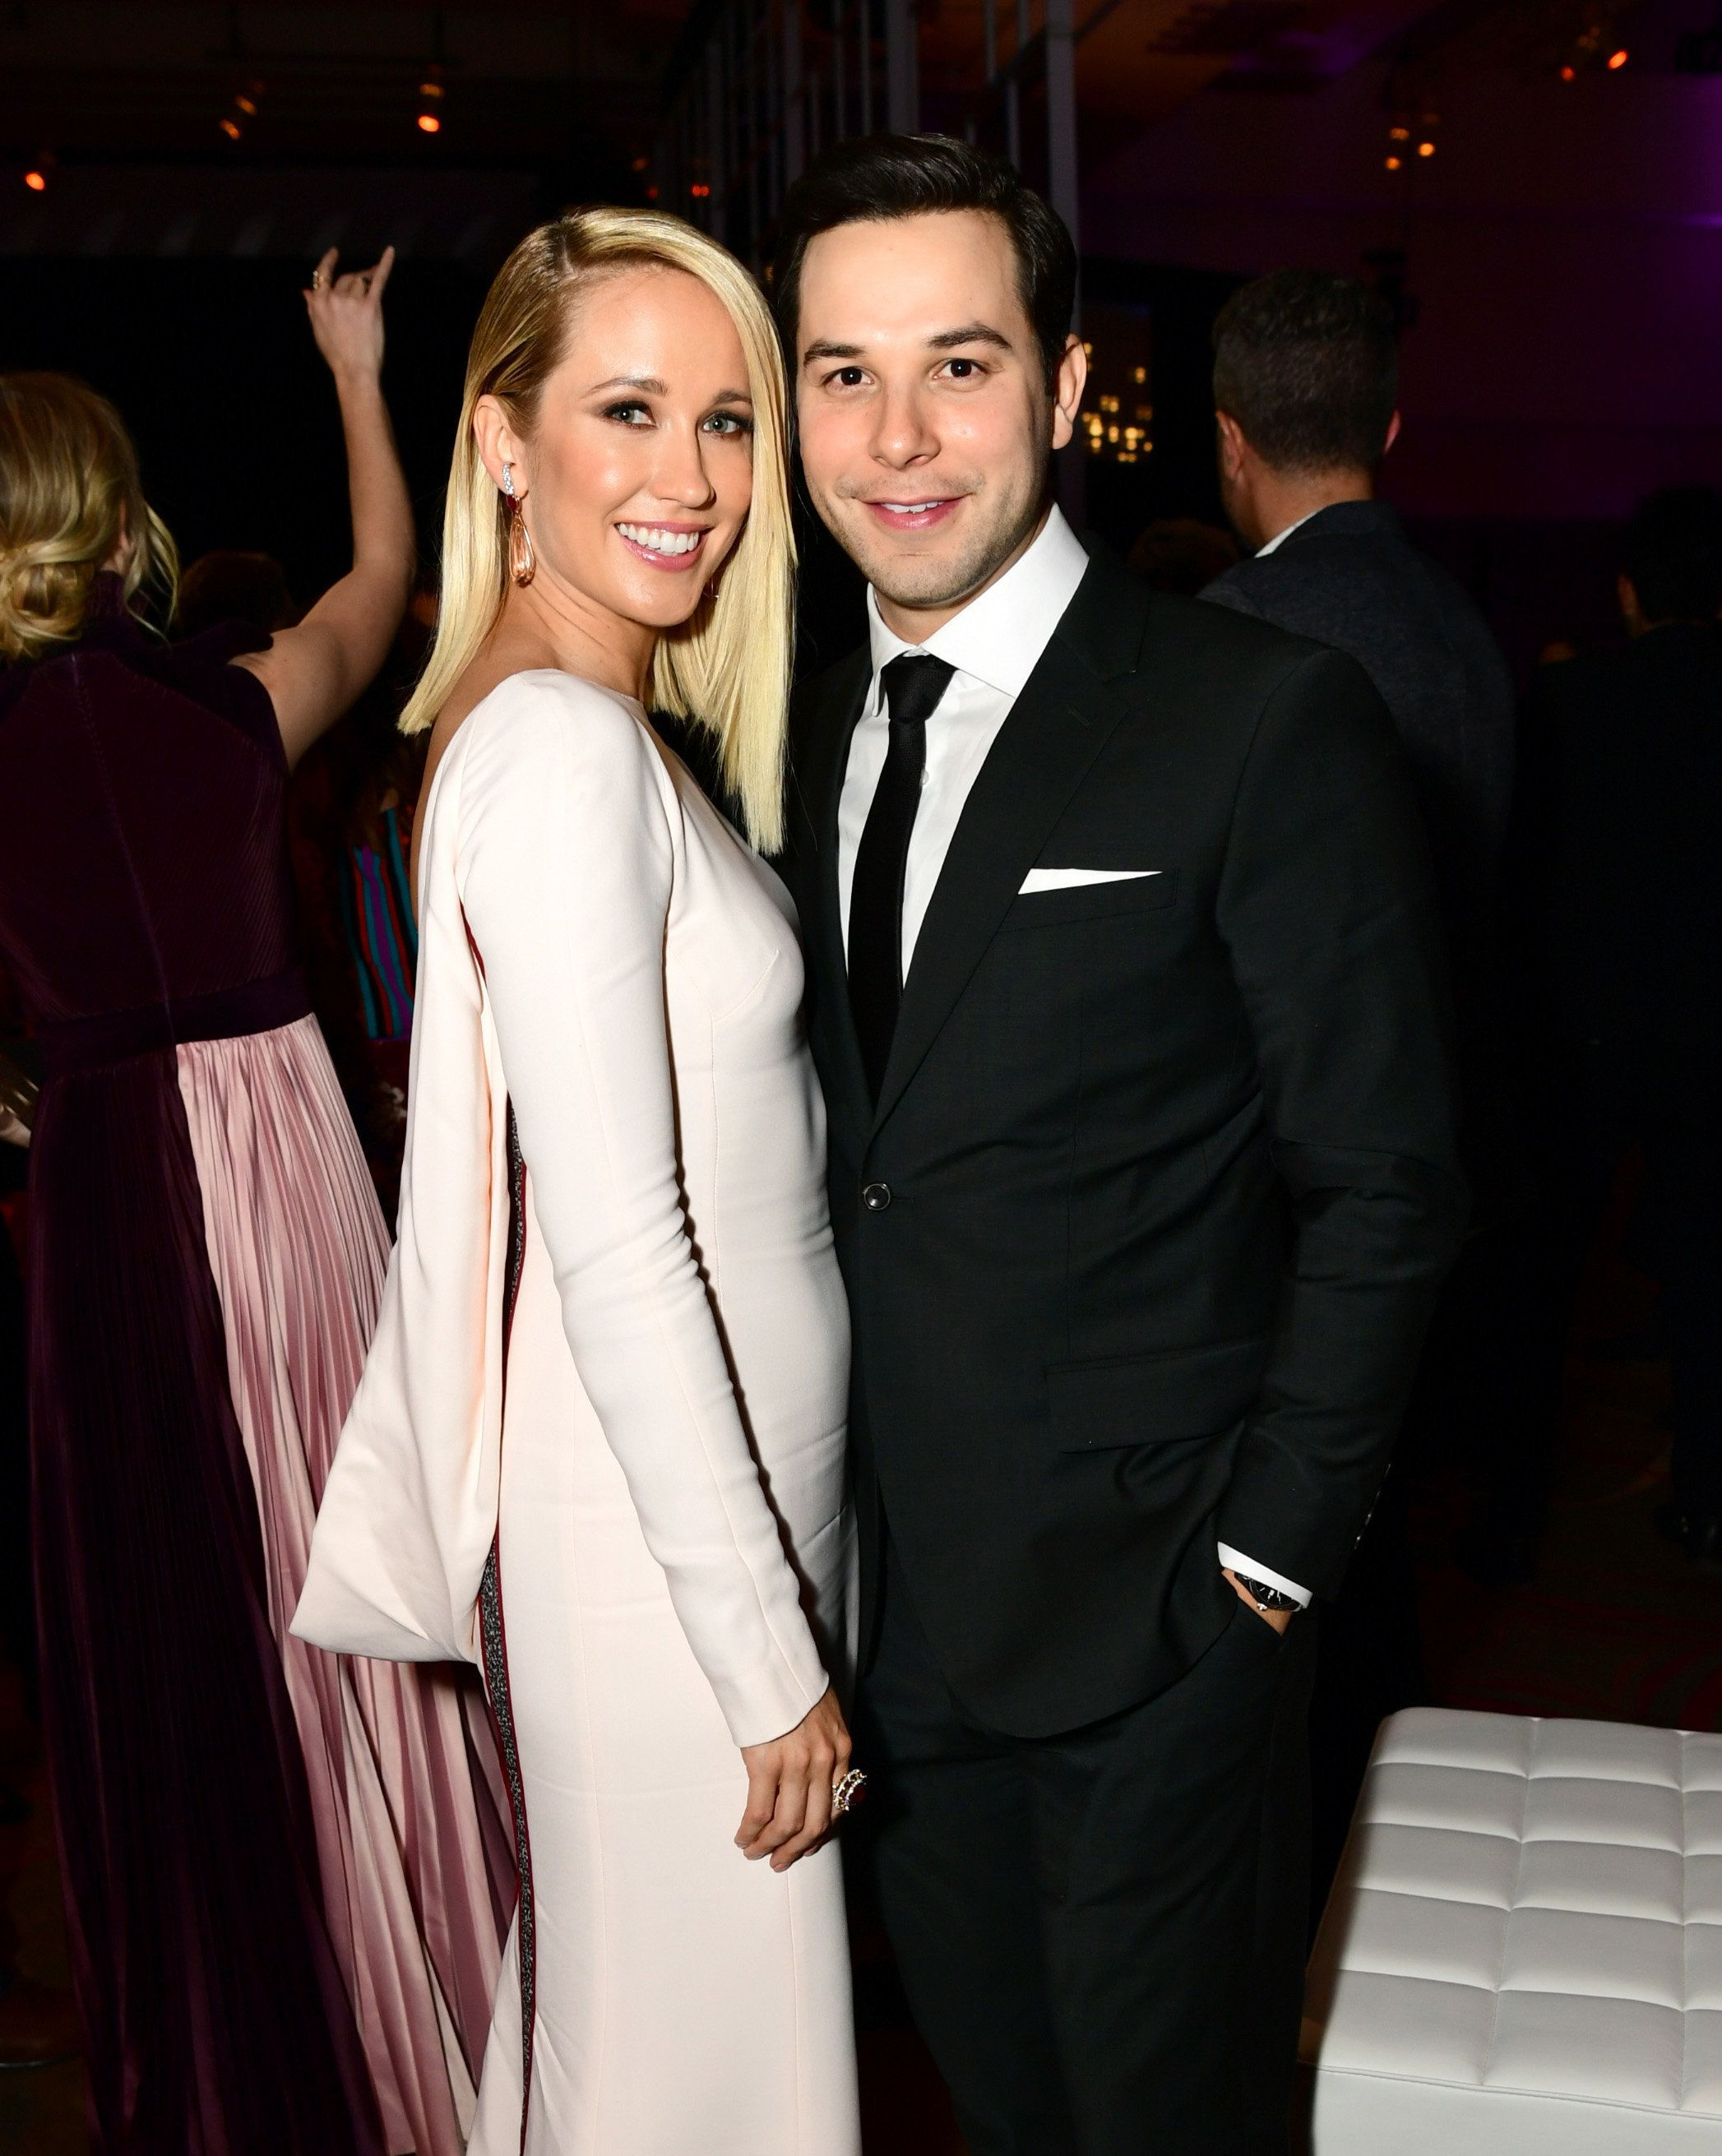 HOLLYWOOD, CA - DECEMBER 12:  Anna Camp and Skylar Astin attend the after party for the premiere of Universal Pictures' 'Pitch Perfect 3' on December 12, 2017 in Hollywood, California.  (Photo by Emma McIntyre/Getty Images)